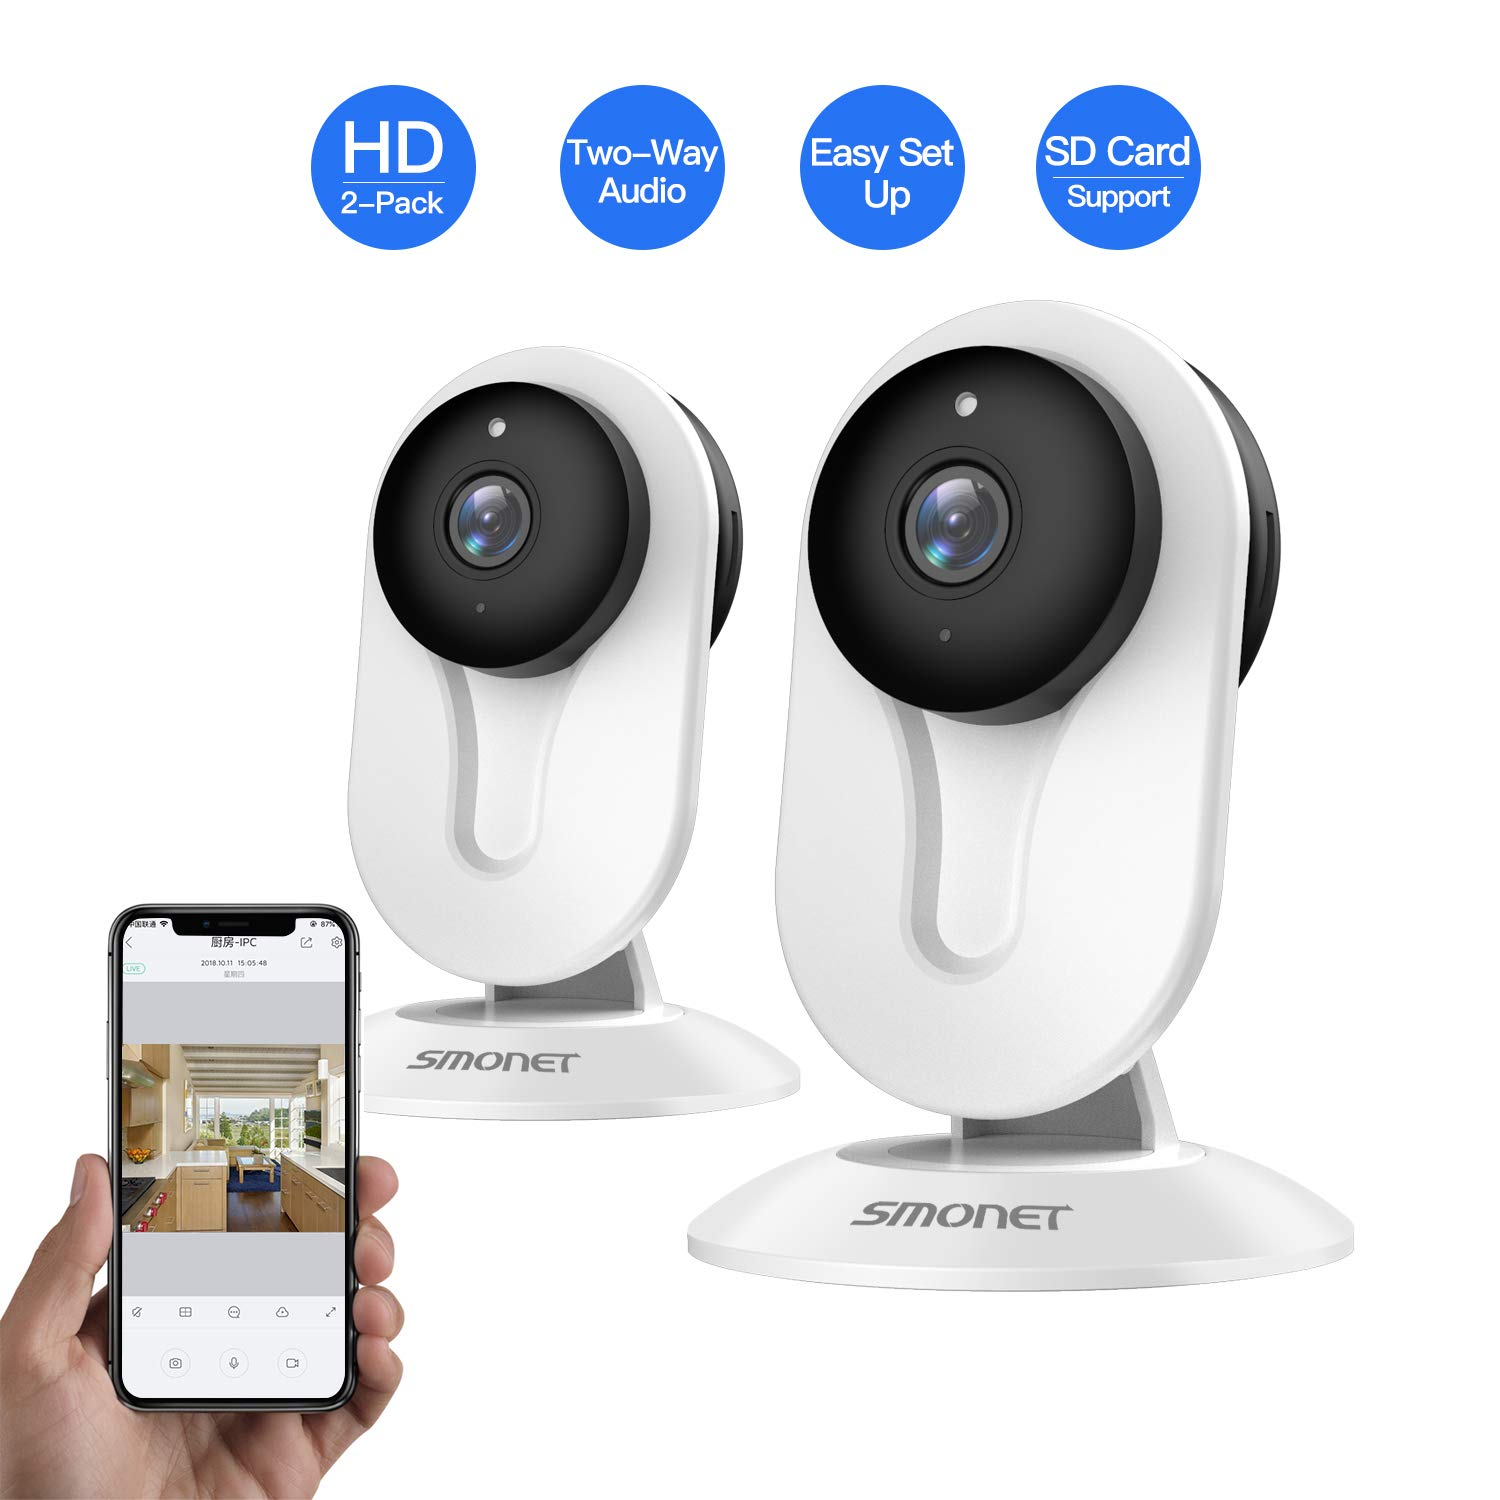 SMONET Security Camera Wireless, HD Wireless IP Camera Built in Two-Way Audio, Security Surveillance CCTV Camera with Night Vision-Cloud Service Available 2packs,White